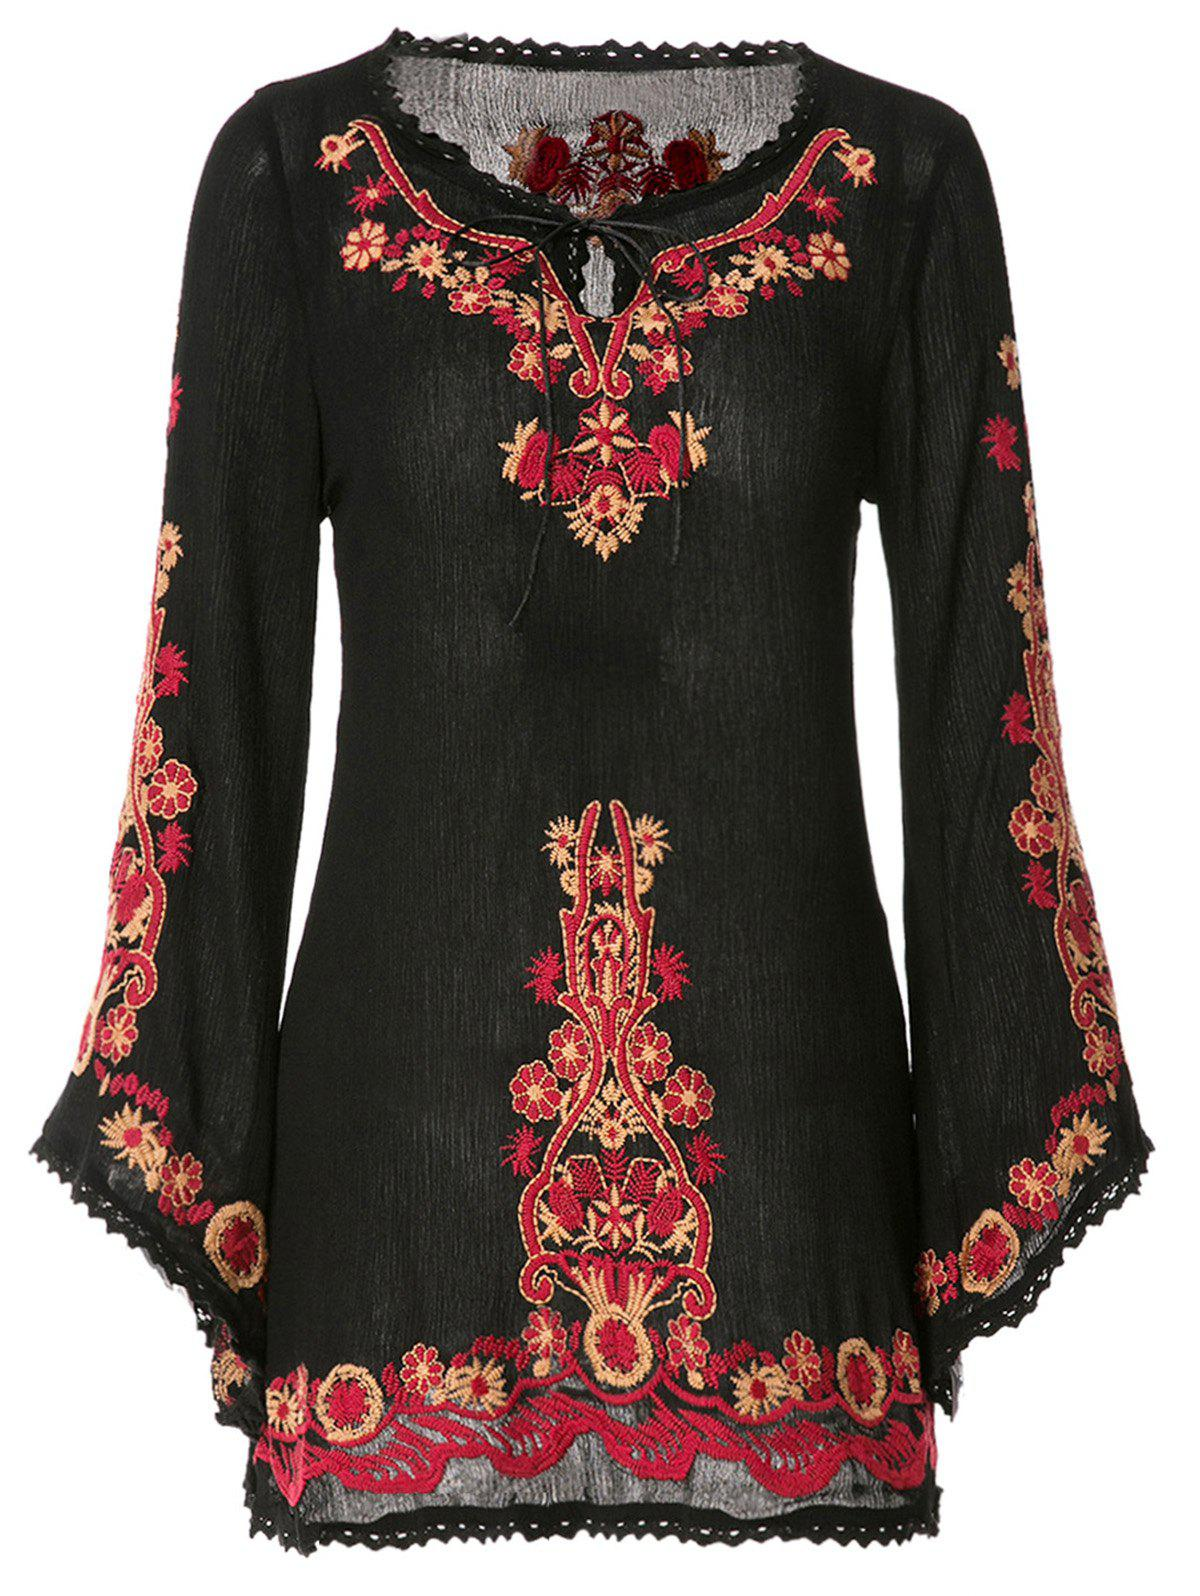 Ethnic Style V-Neck Floral Embroidery Lace Splicing Long Sleeve Dress For Women